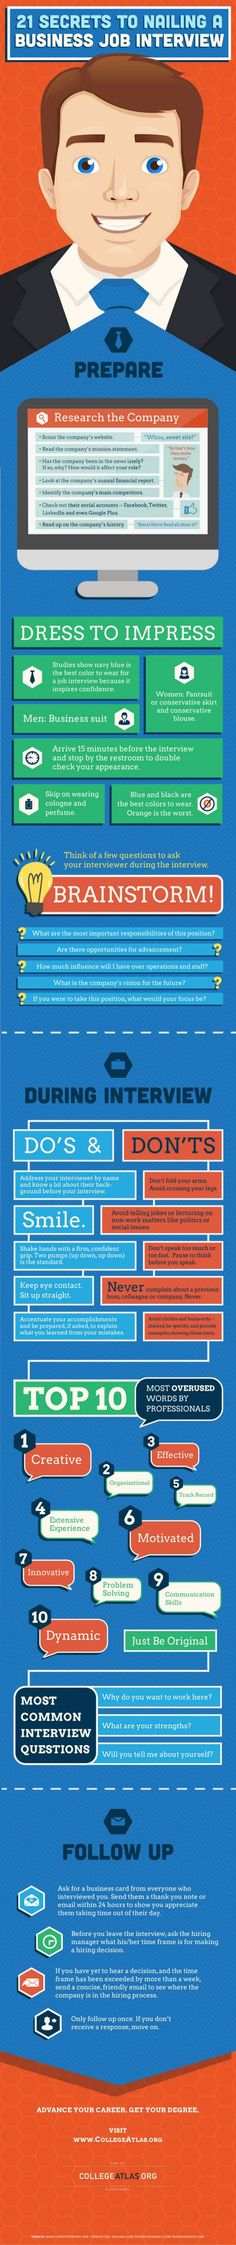 21 secrets to nailing a job interview - what color is best to wear, what questions to ask, body language to avoid, and more #infographic